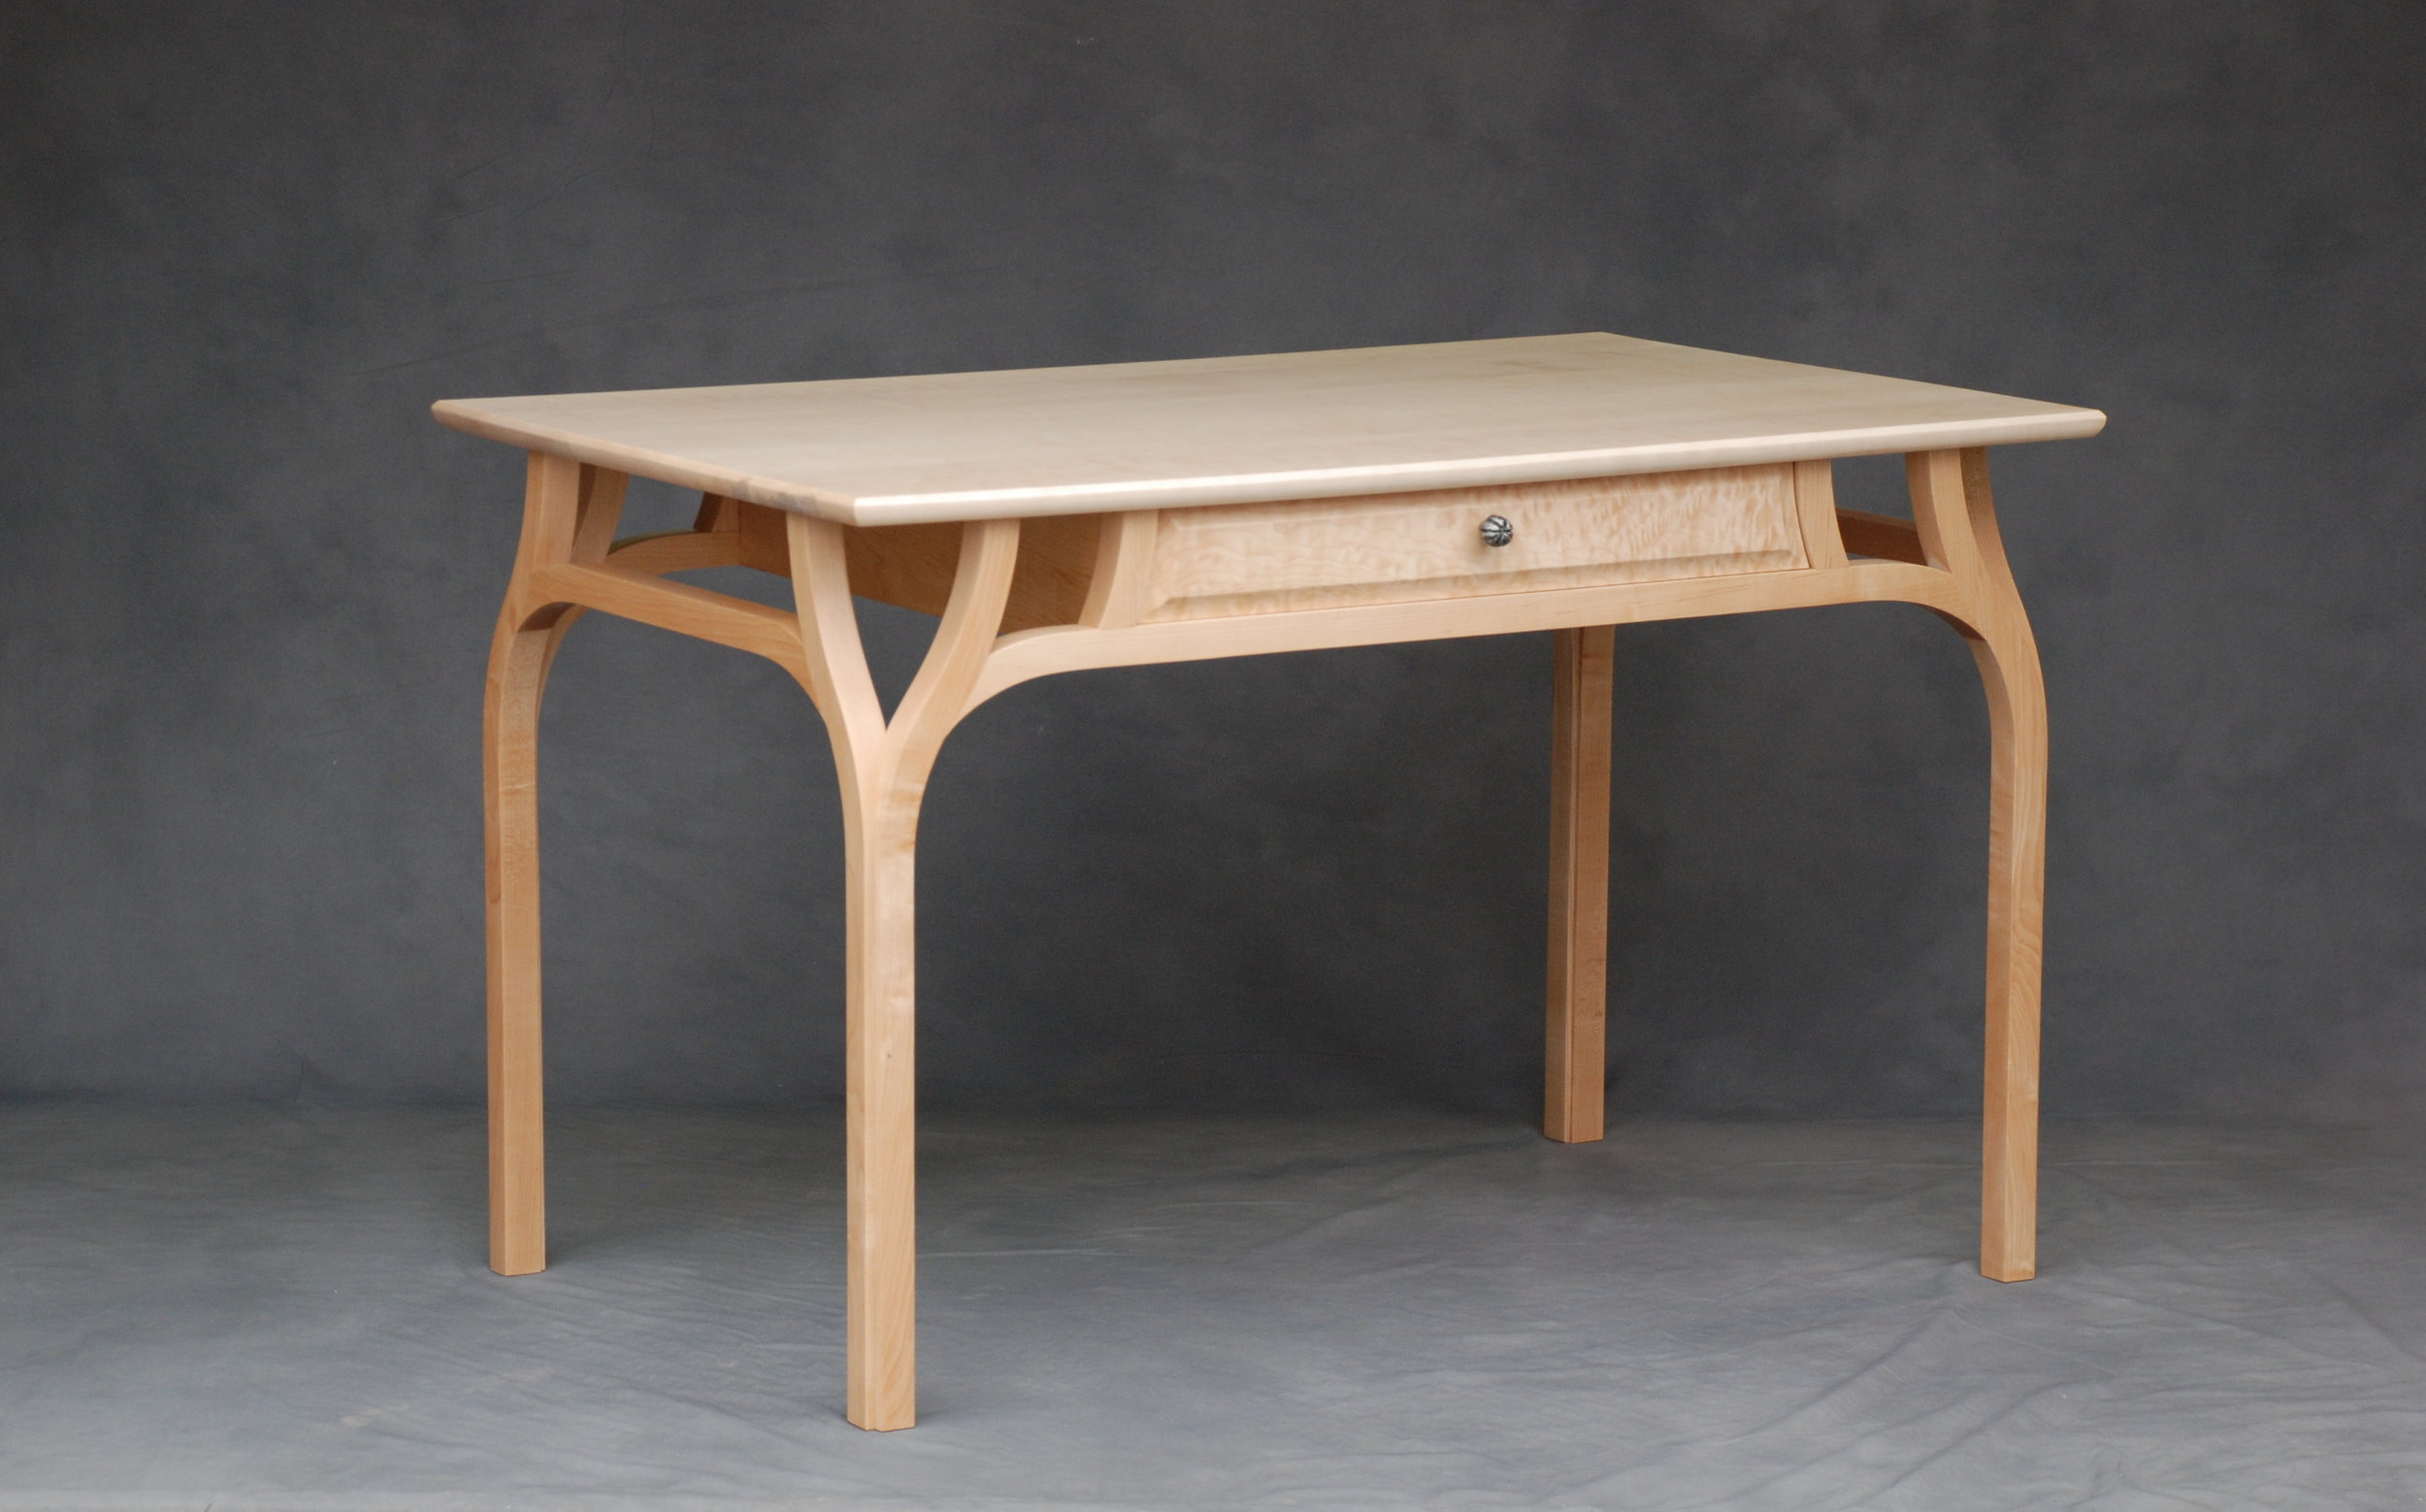 Lopez Desk